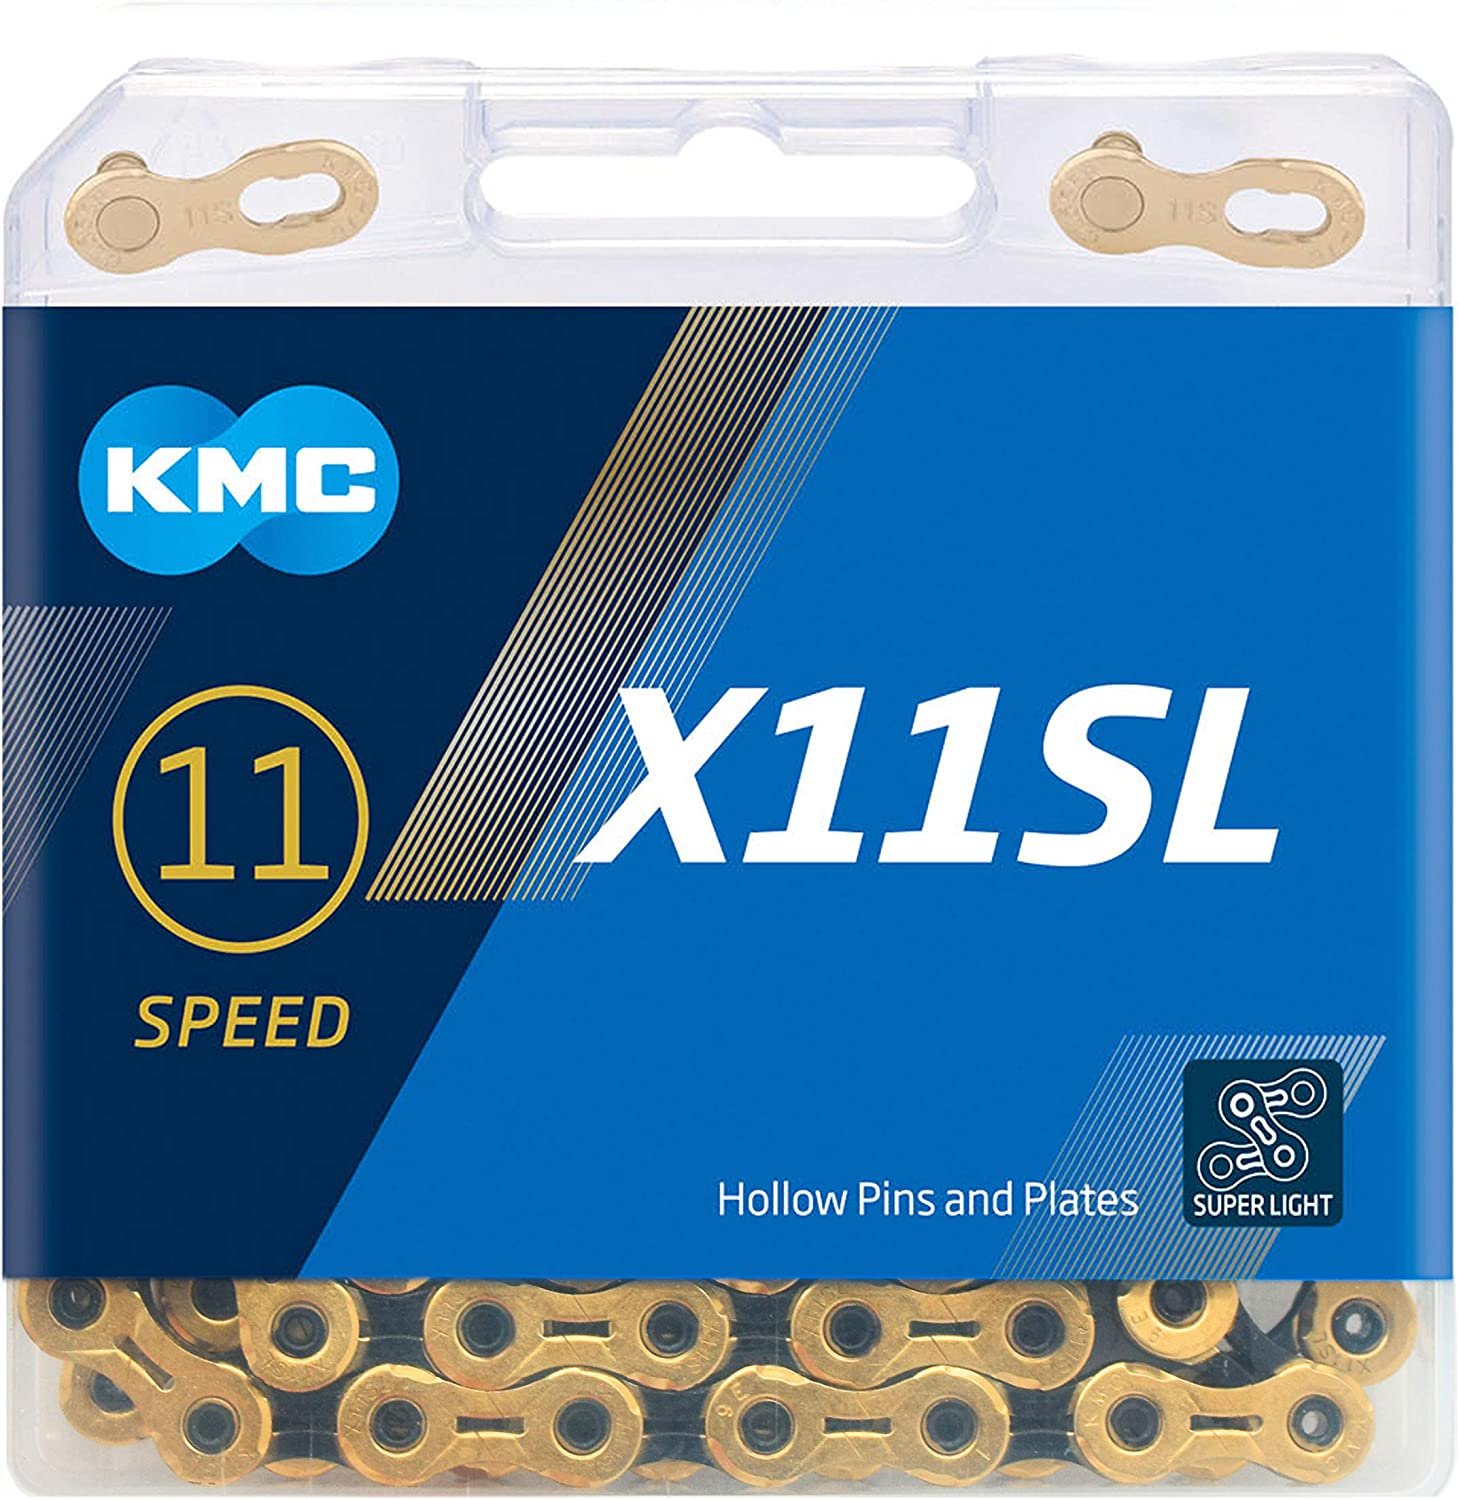 KMC X11 Chain 11 Speed 118 Links Solid Pins Inner and Outer Plates w// Quick Link